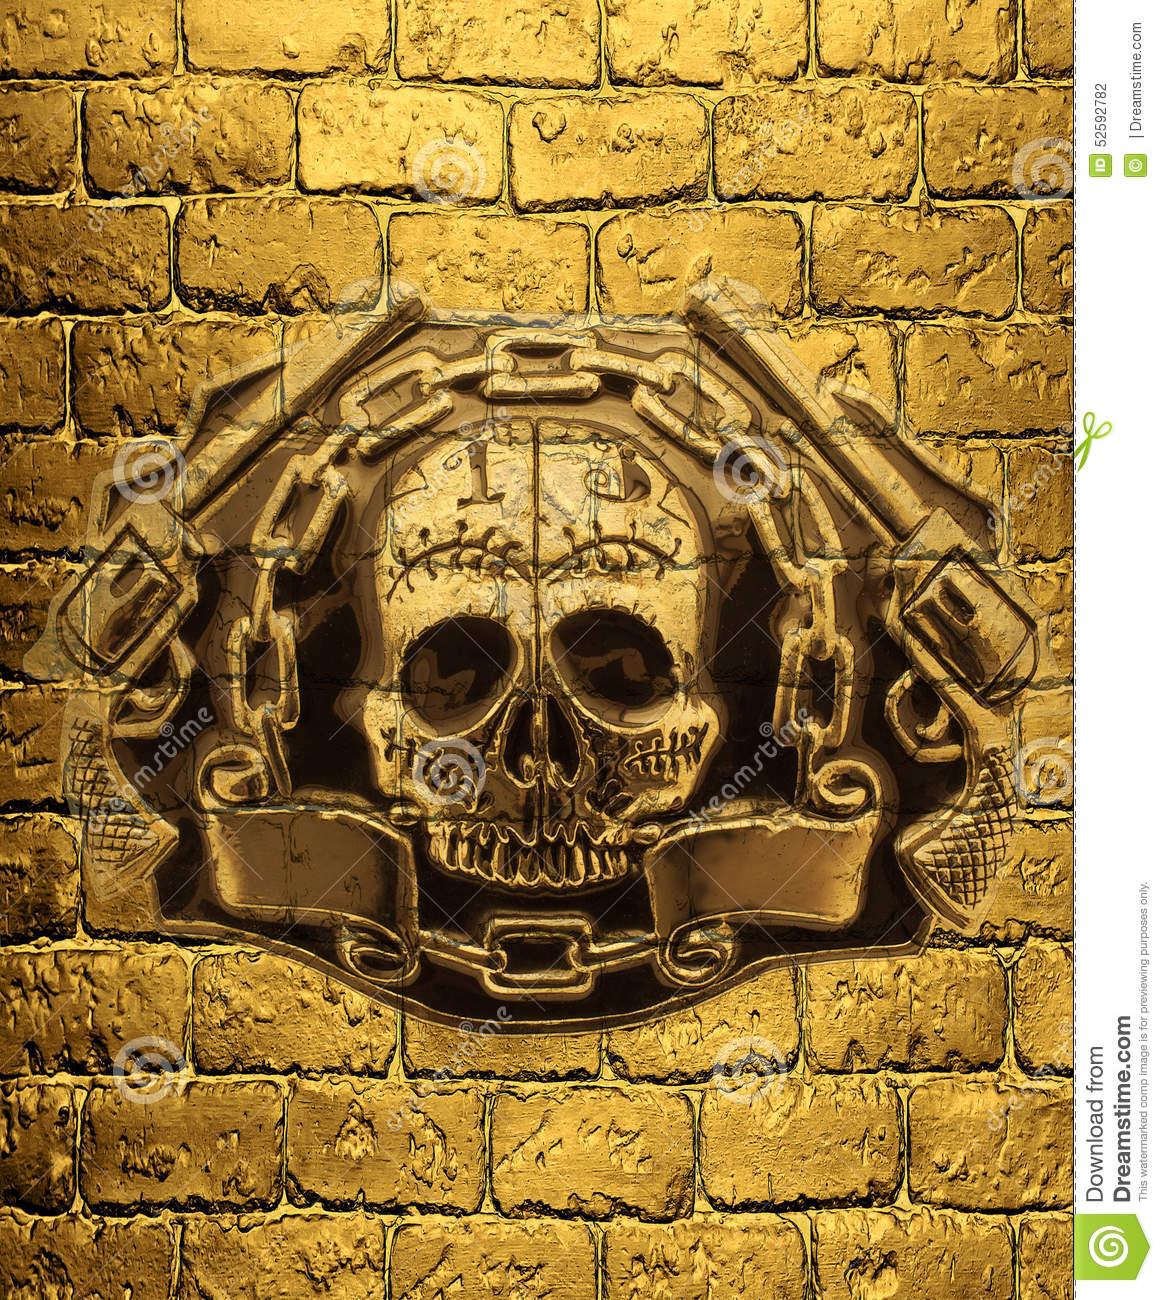 skull golden guns and chain on a background of golden brick wal stock illustration image. Black Bedroom Furniture Sets. Home Design Ideas